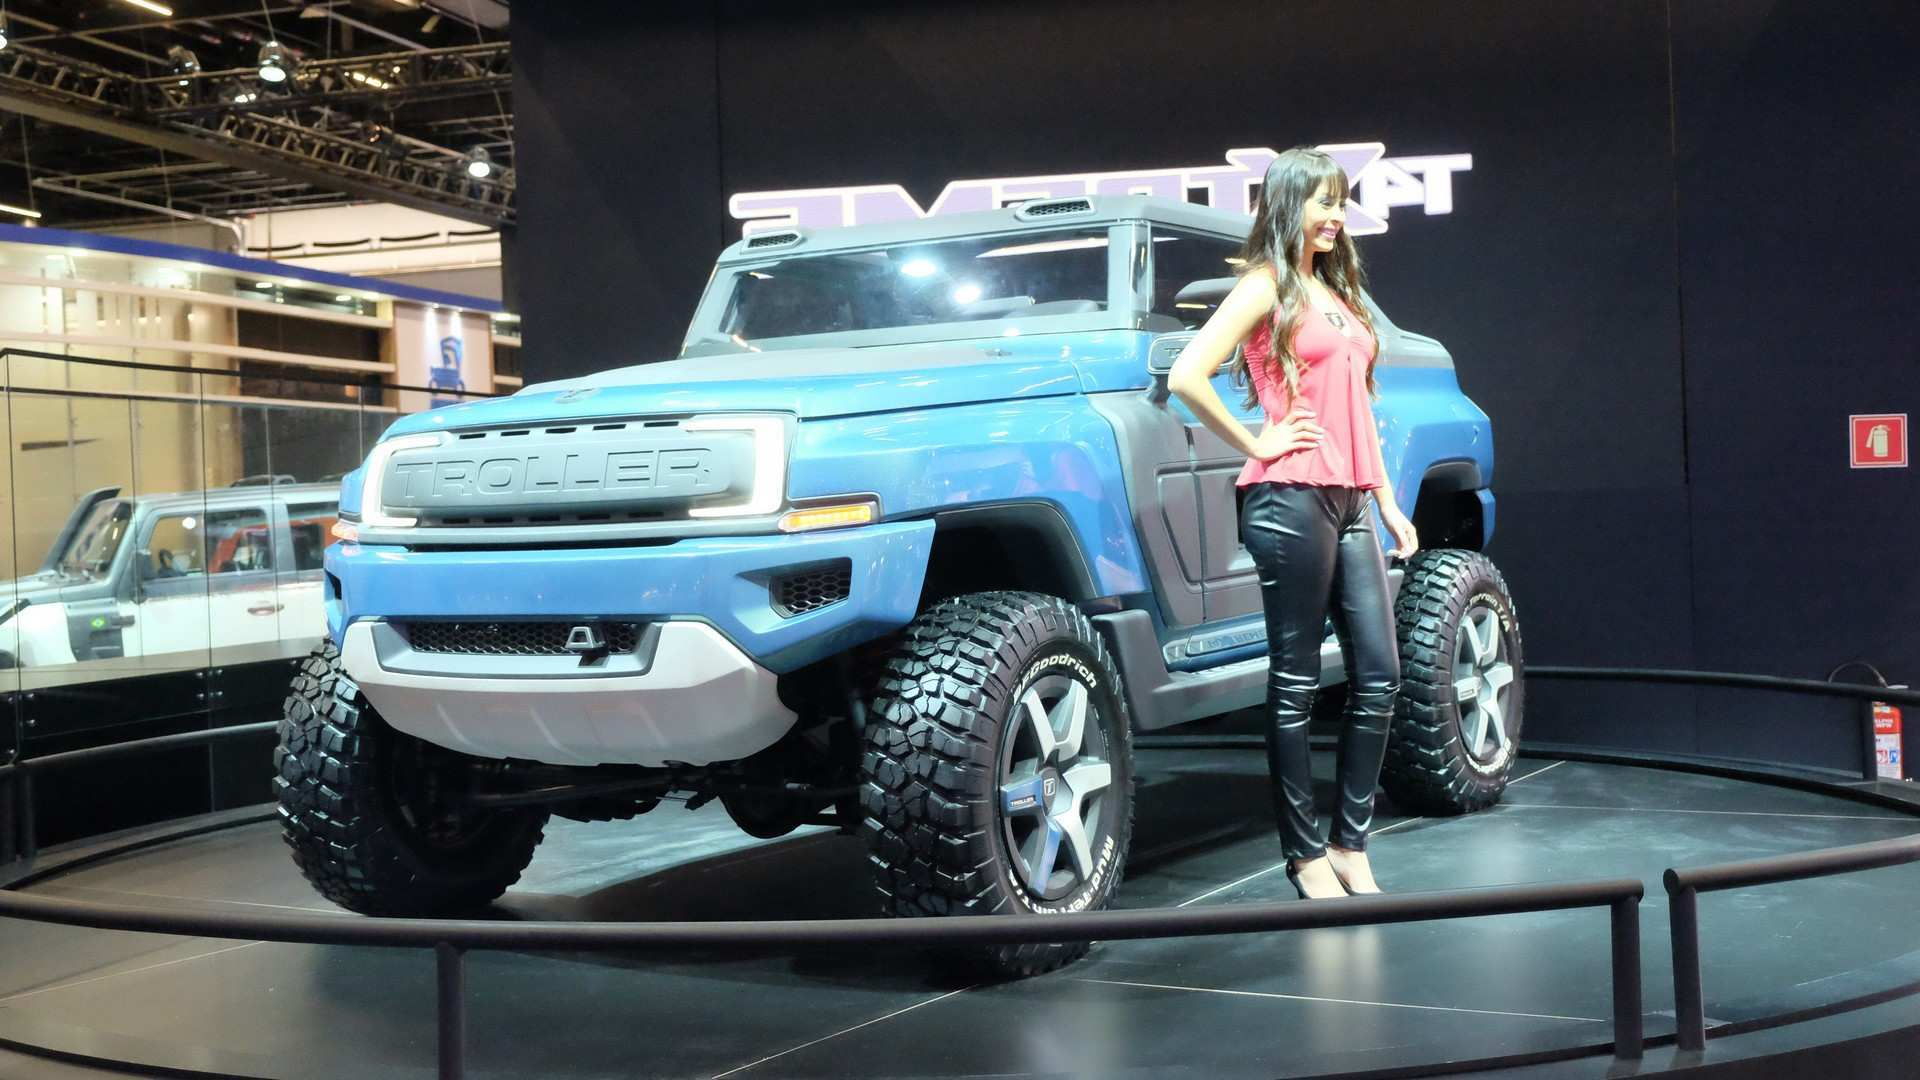 58 New 2019 Ford Troller T4 Price and Review by 2019 Ford Troller T4